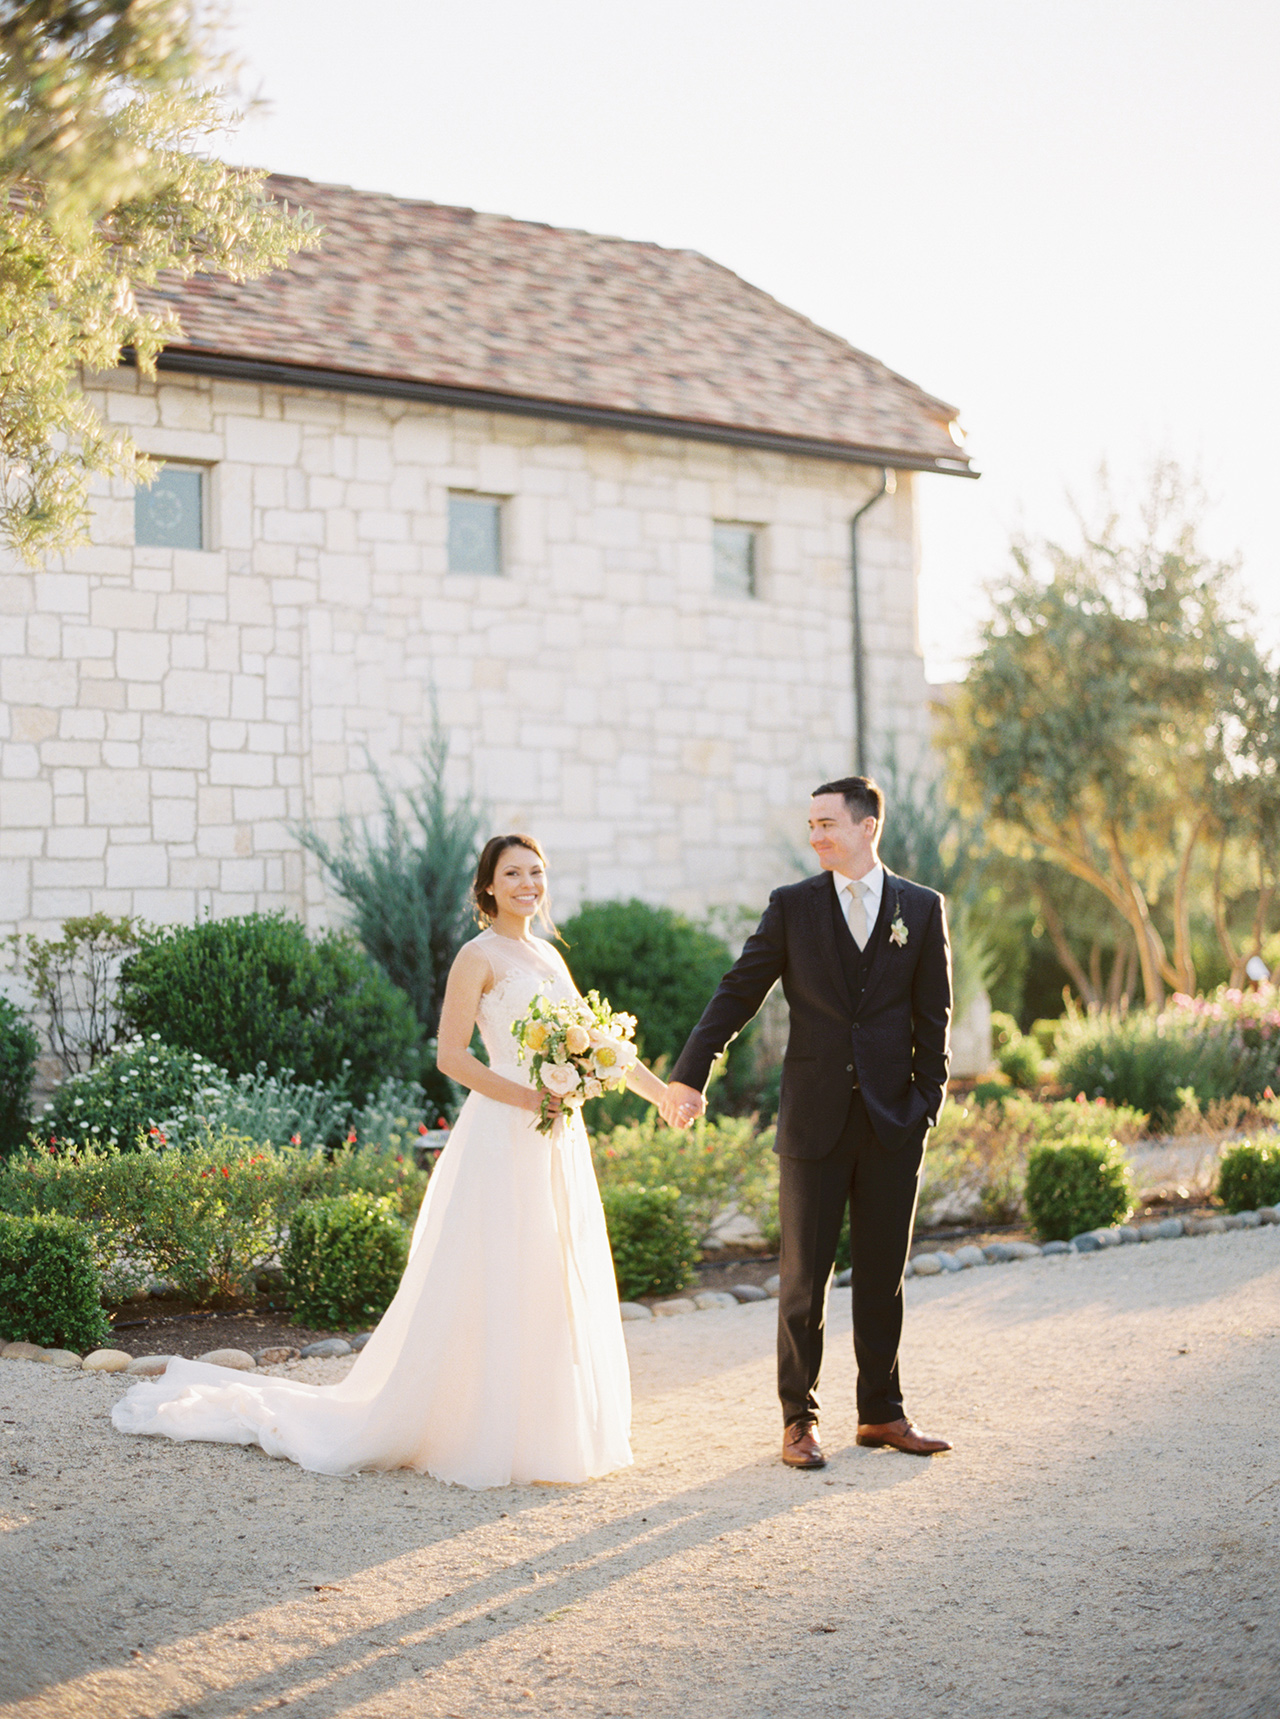 This Romantic, Tuscan-Inspired Wedding in California Embraced the Surrounding Wine Country